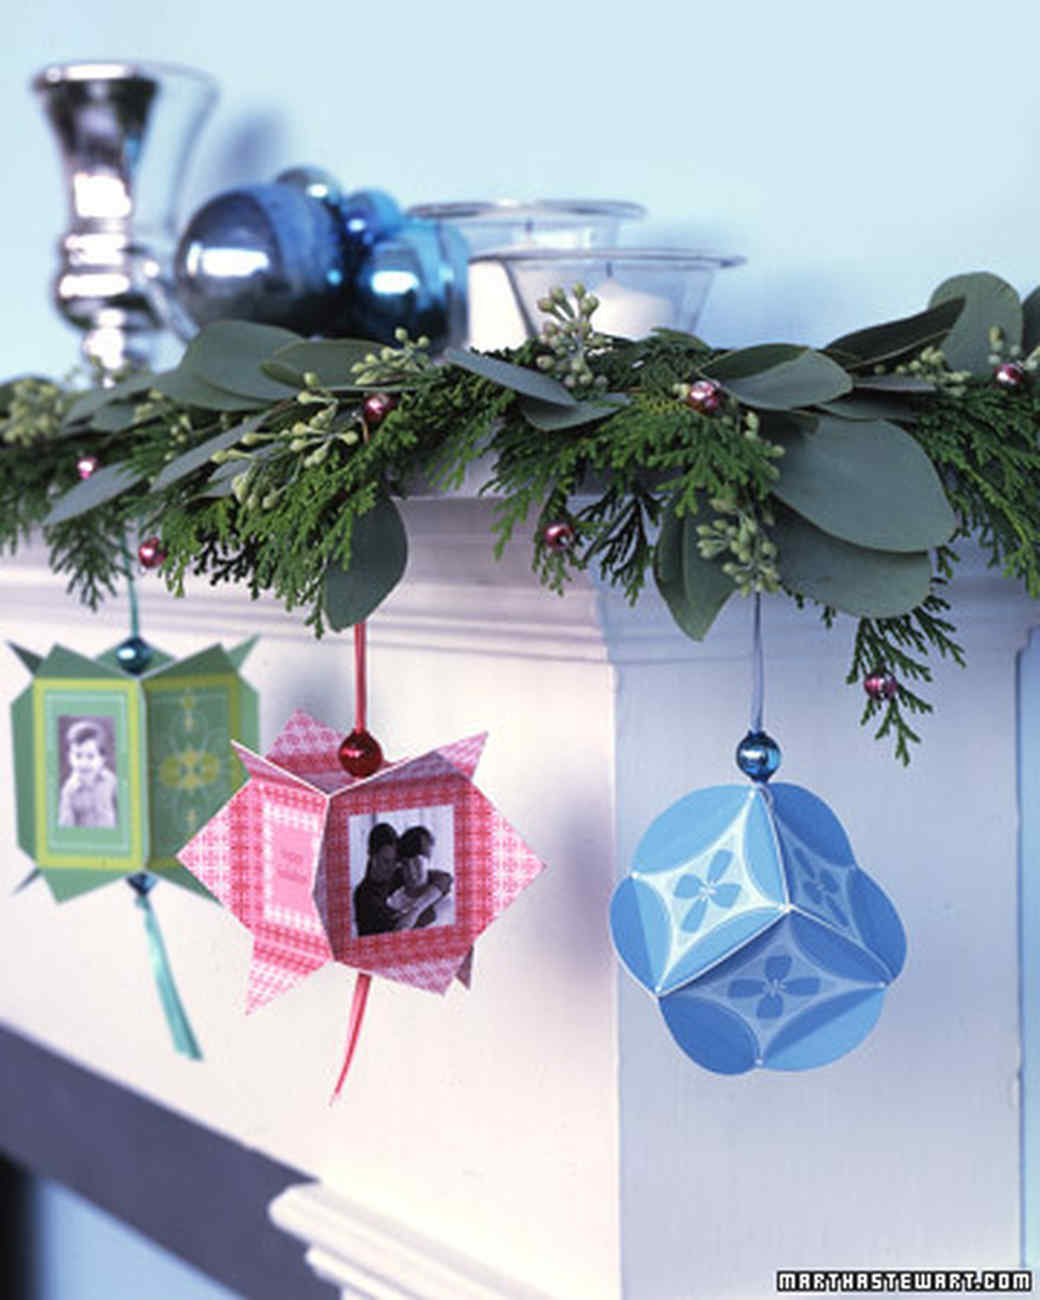 living_ornaments_p107_l.jpg